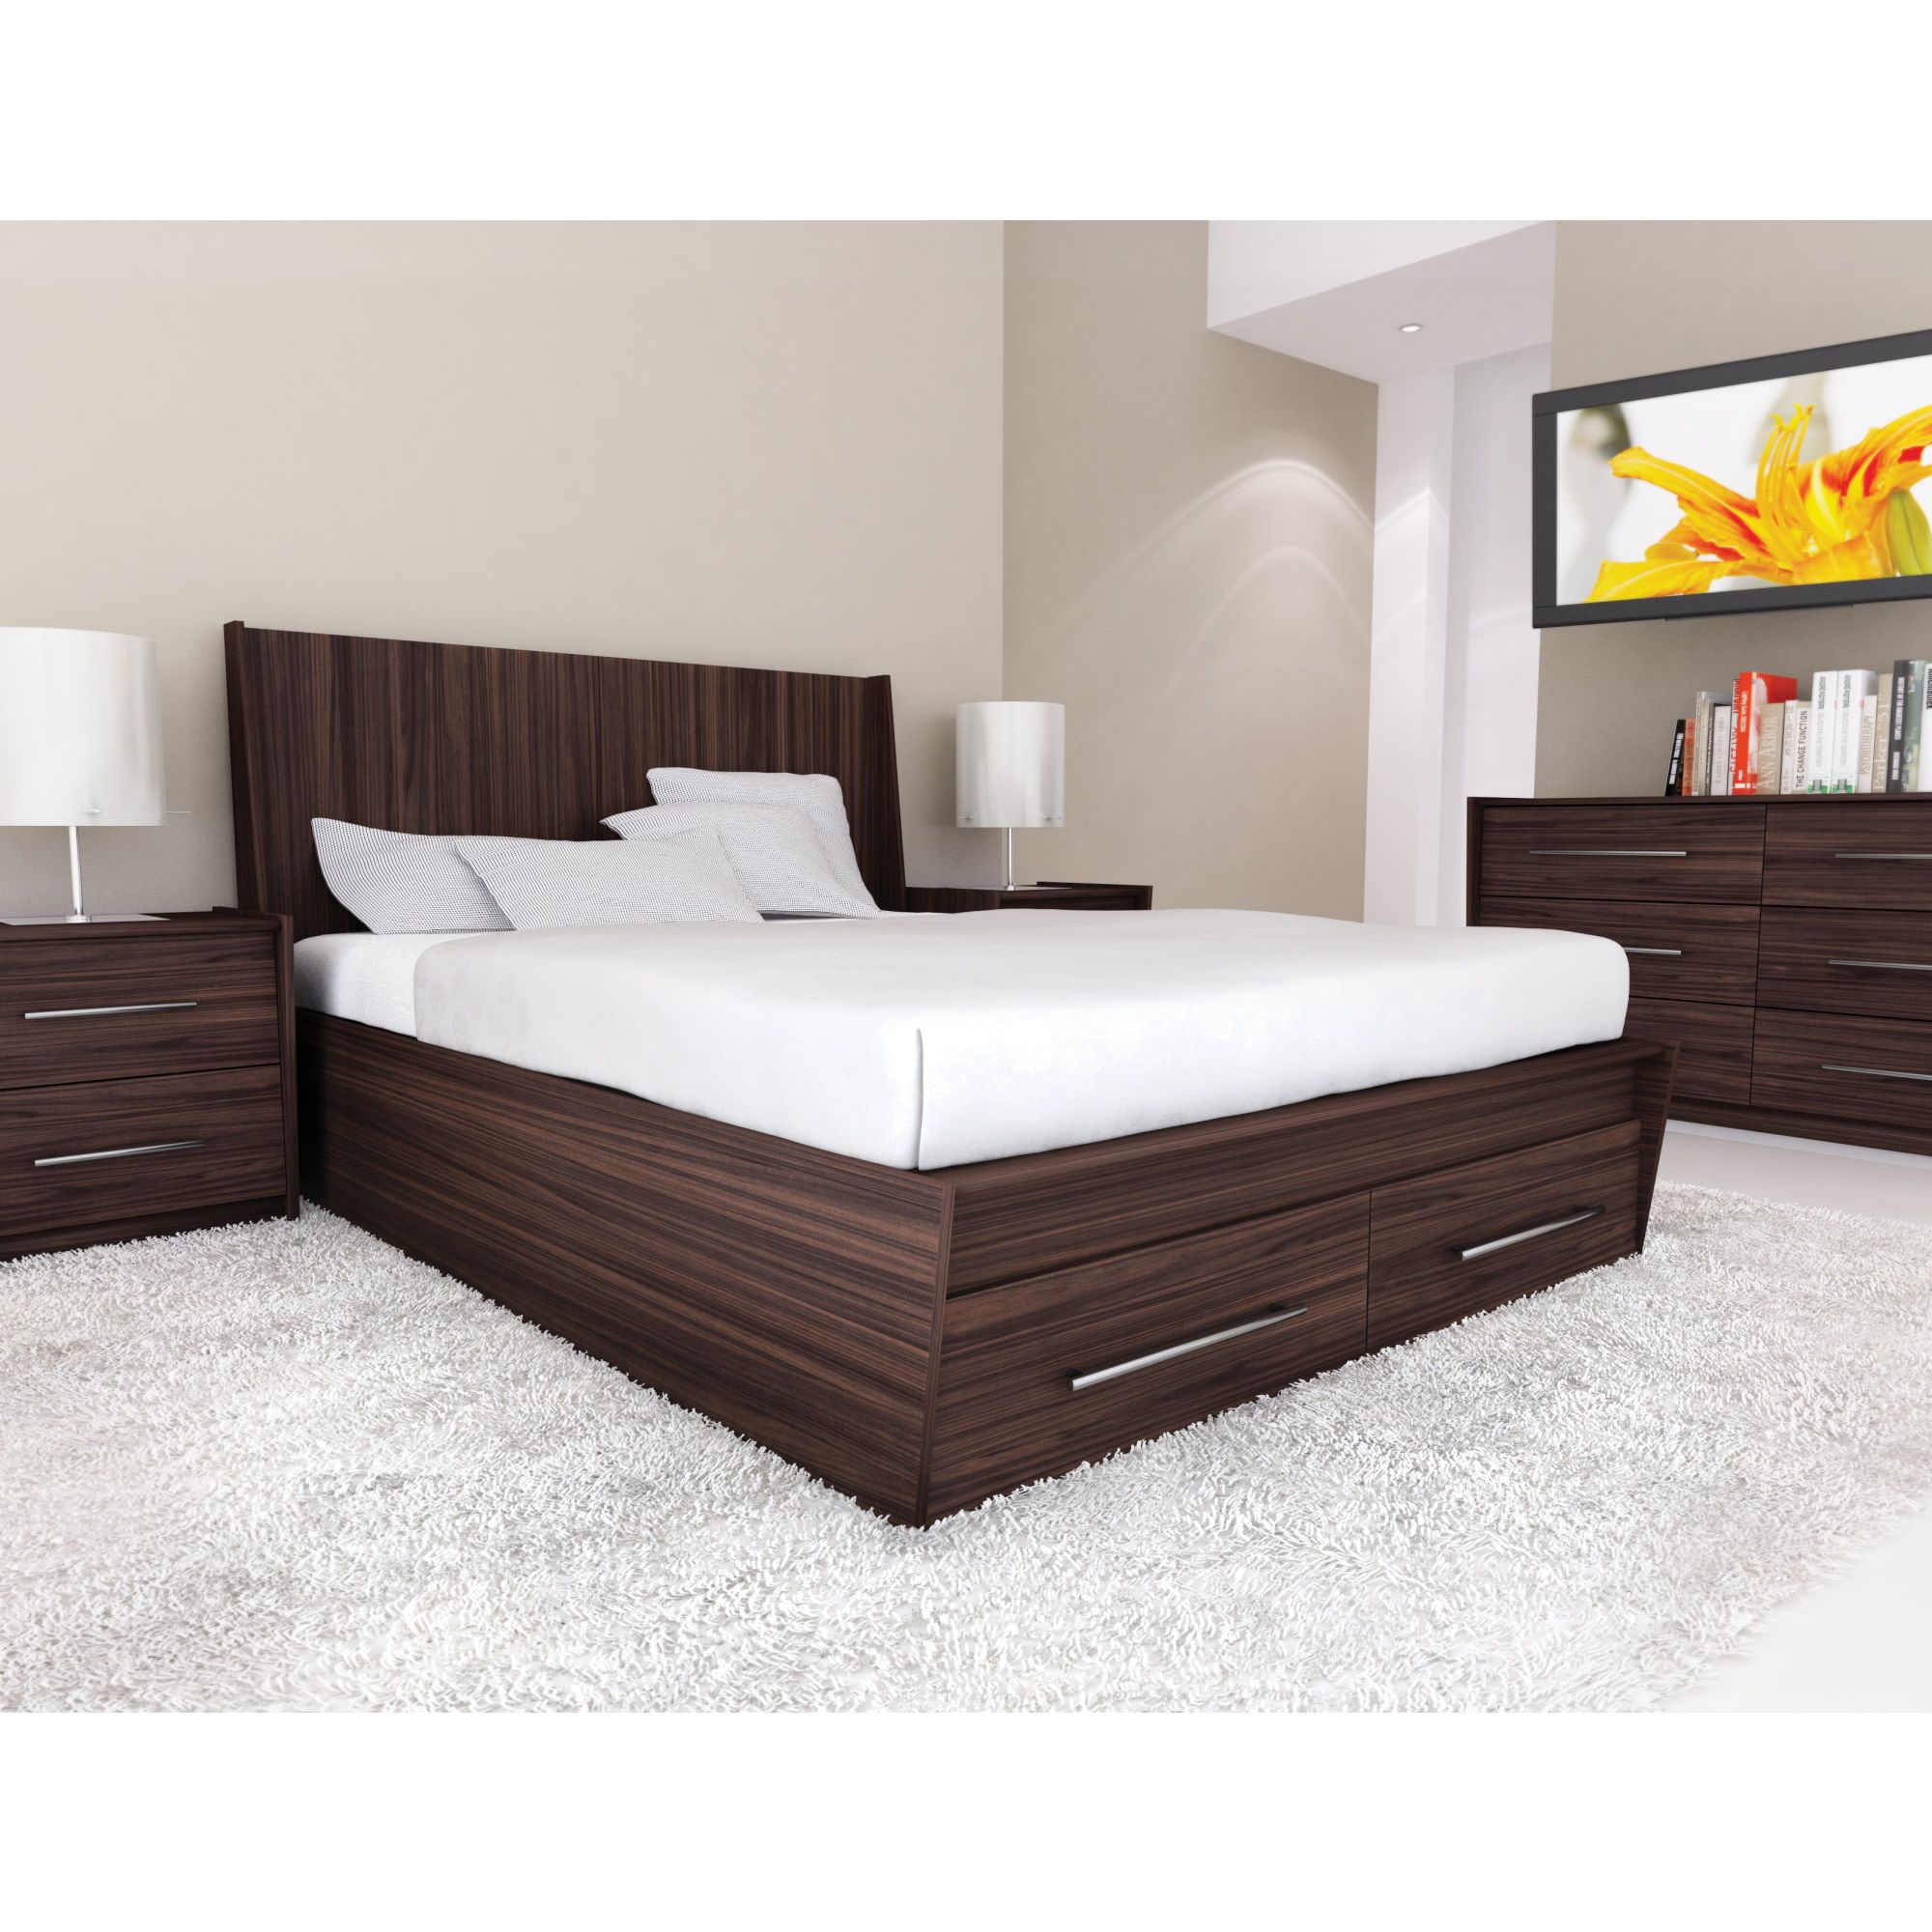 Bed designs for your comfortable bedroom interior design for New bed designs images